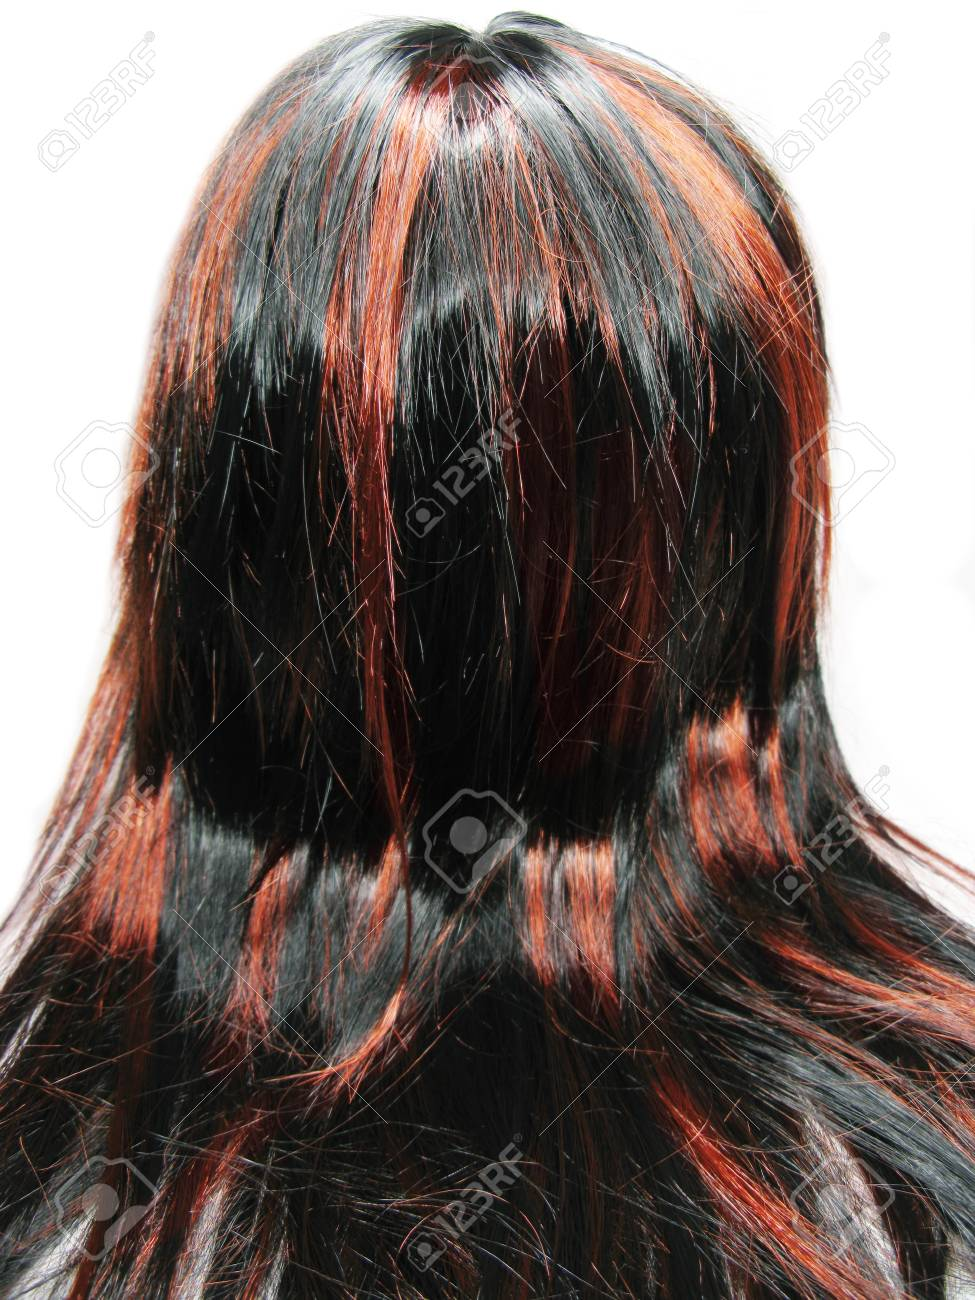 Highlight Hair Black And Red Texture Abstract Background Stock Photo